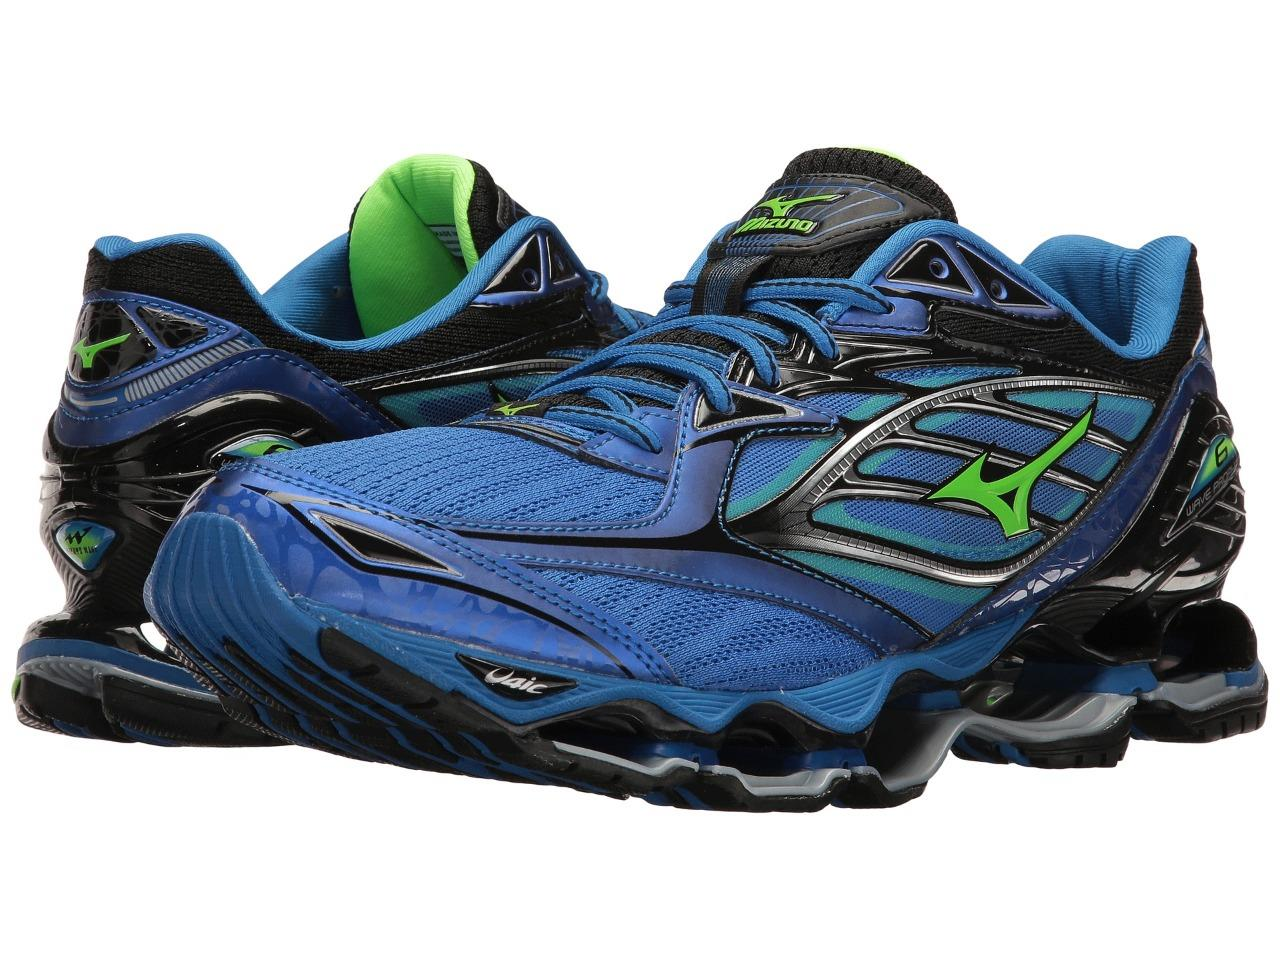 New Mizuno Wave Prophecy 6 Running Shoes Men s Size 9 Blue Last Pair ... dbf8d75c43238